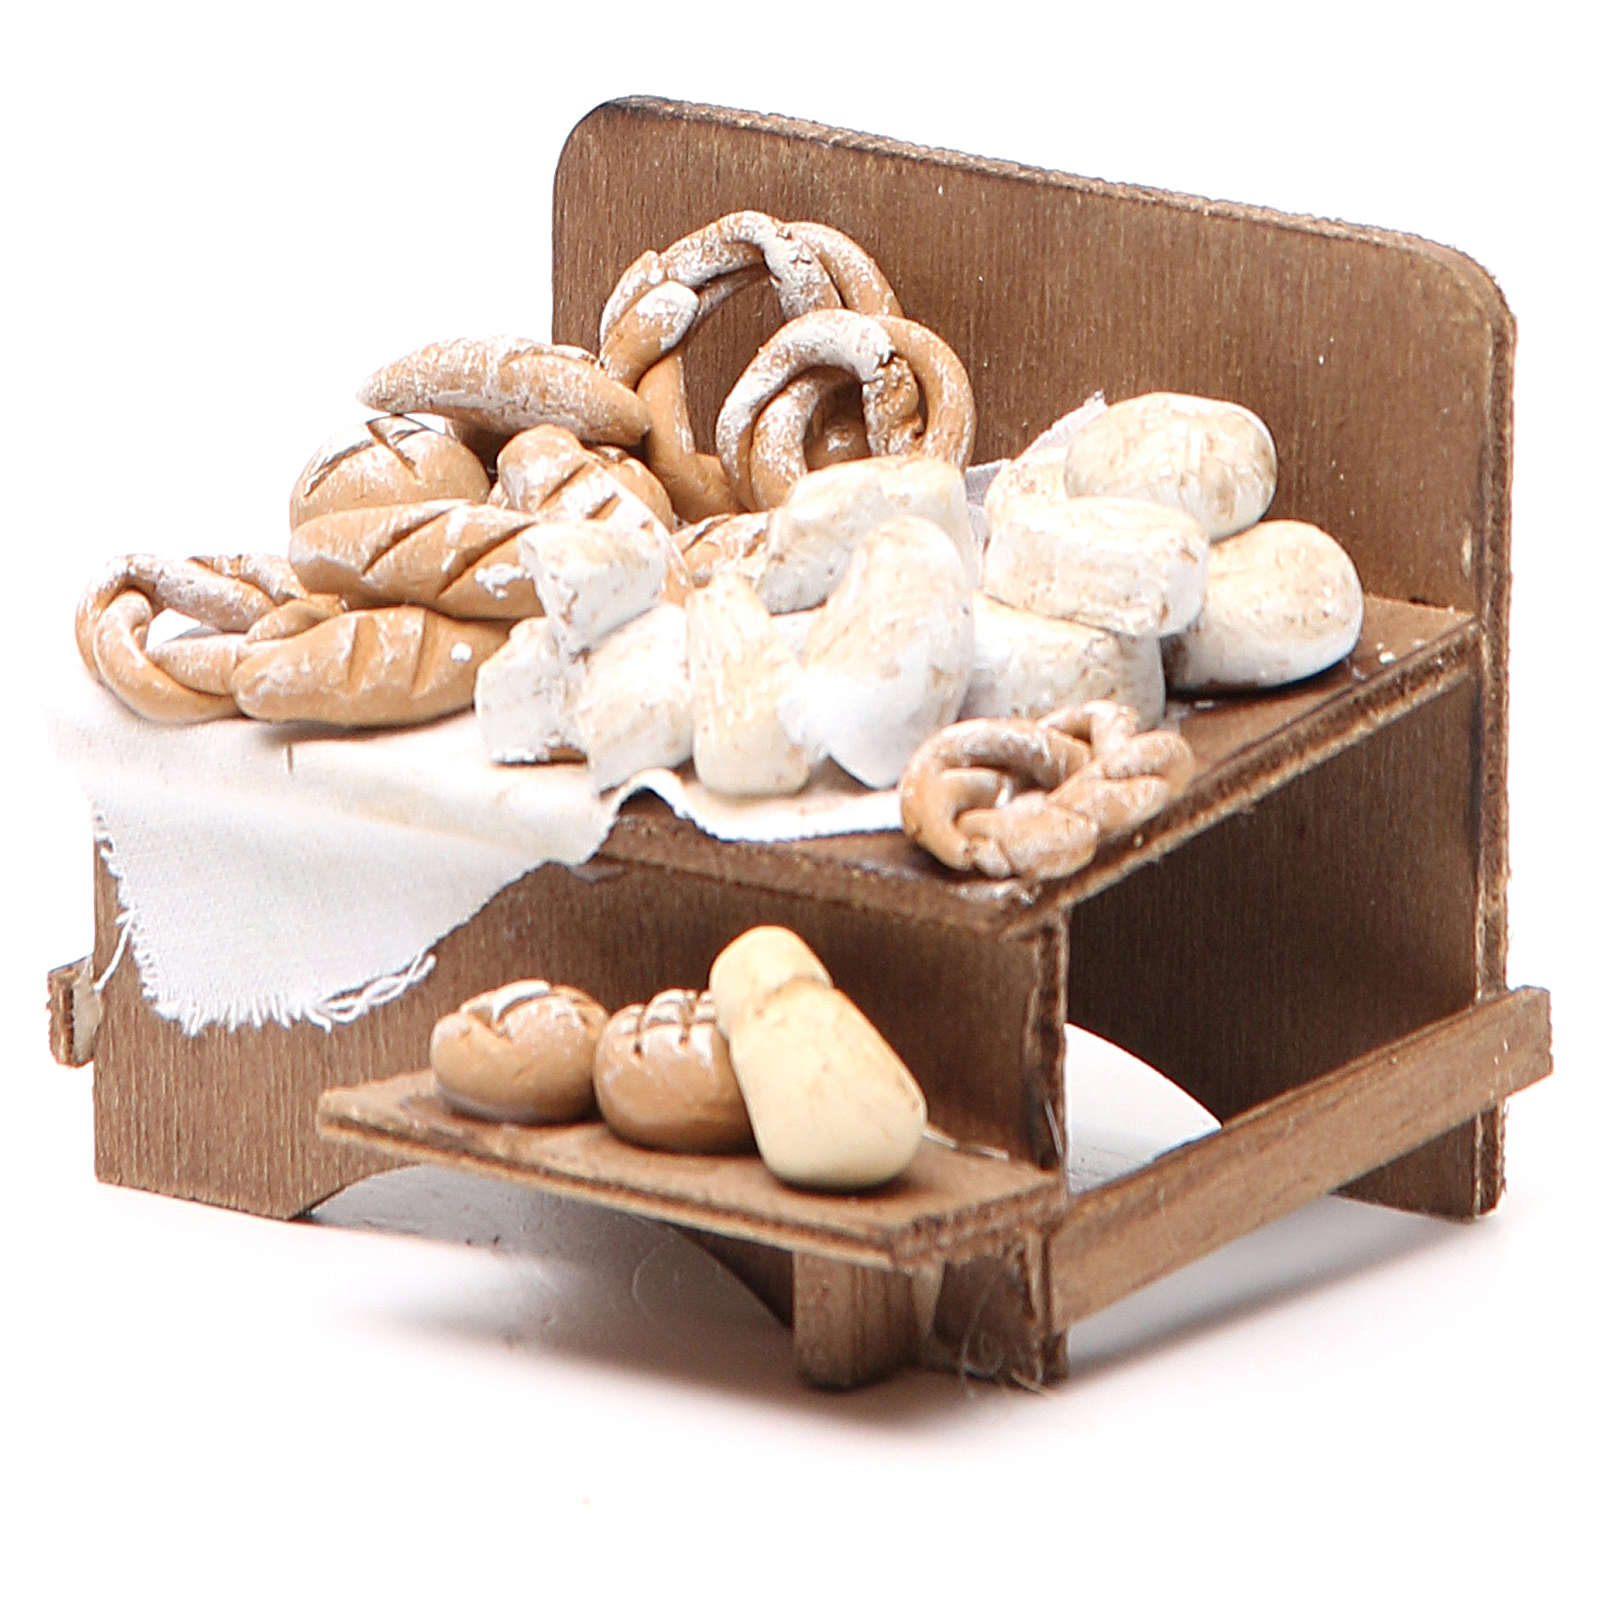 Work bench with bread and cheeses 7x9x8cm neapolitan Nativity 4